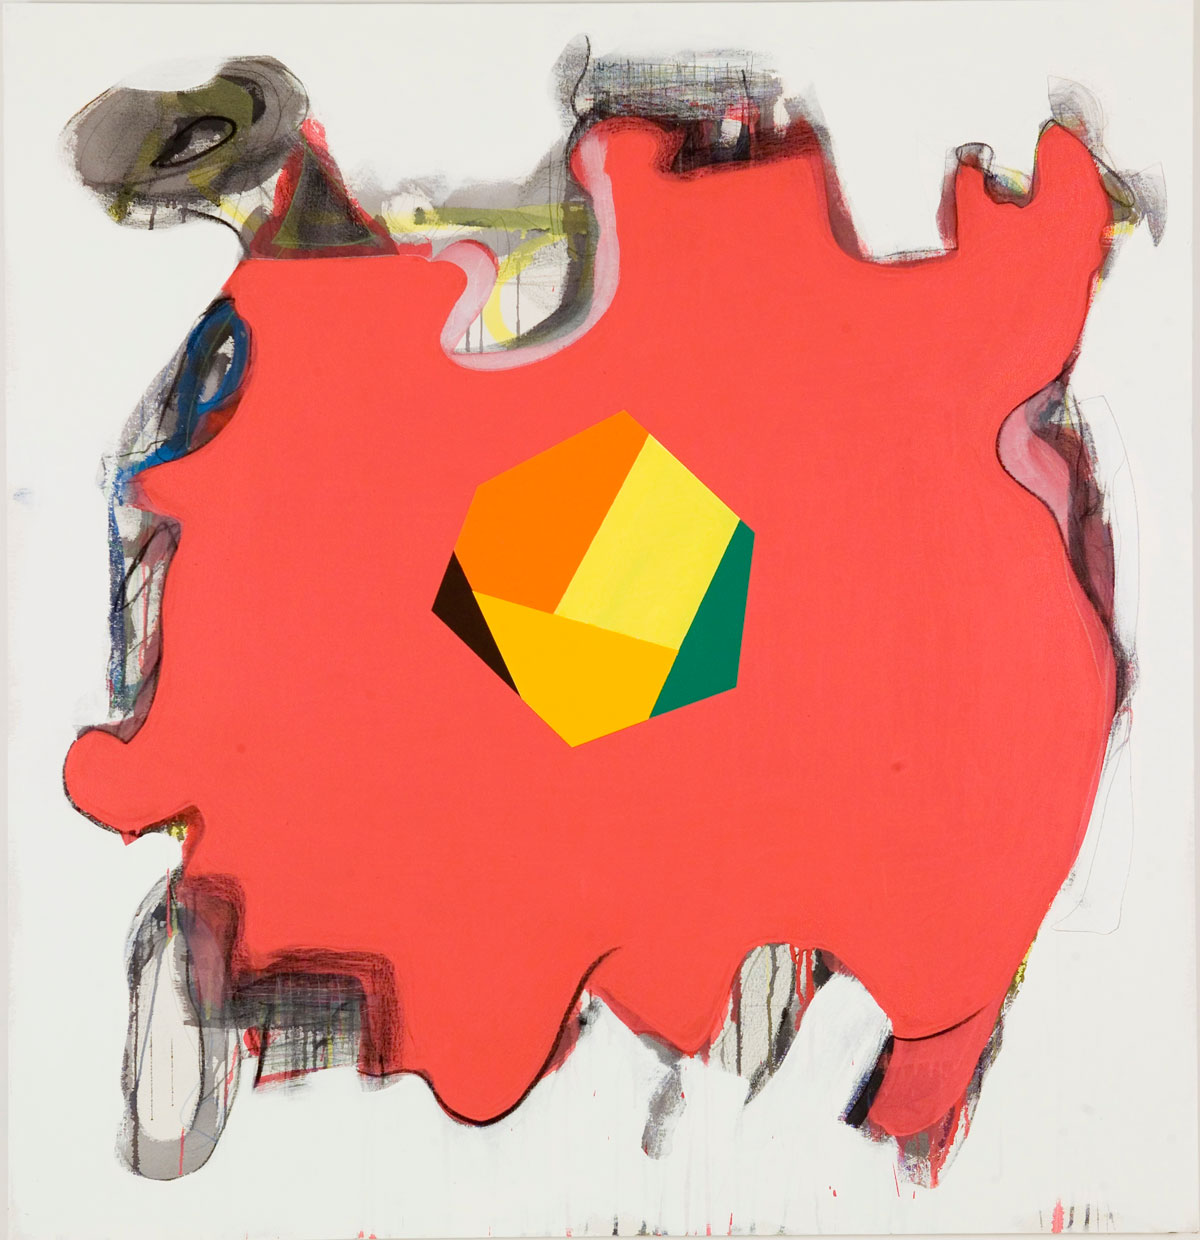 "Peter Plagens, Get In There Fast, 2010, mixed media on canvas, 54"" x 52"""